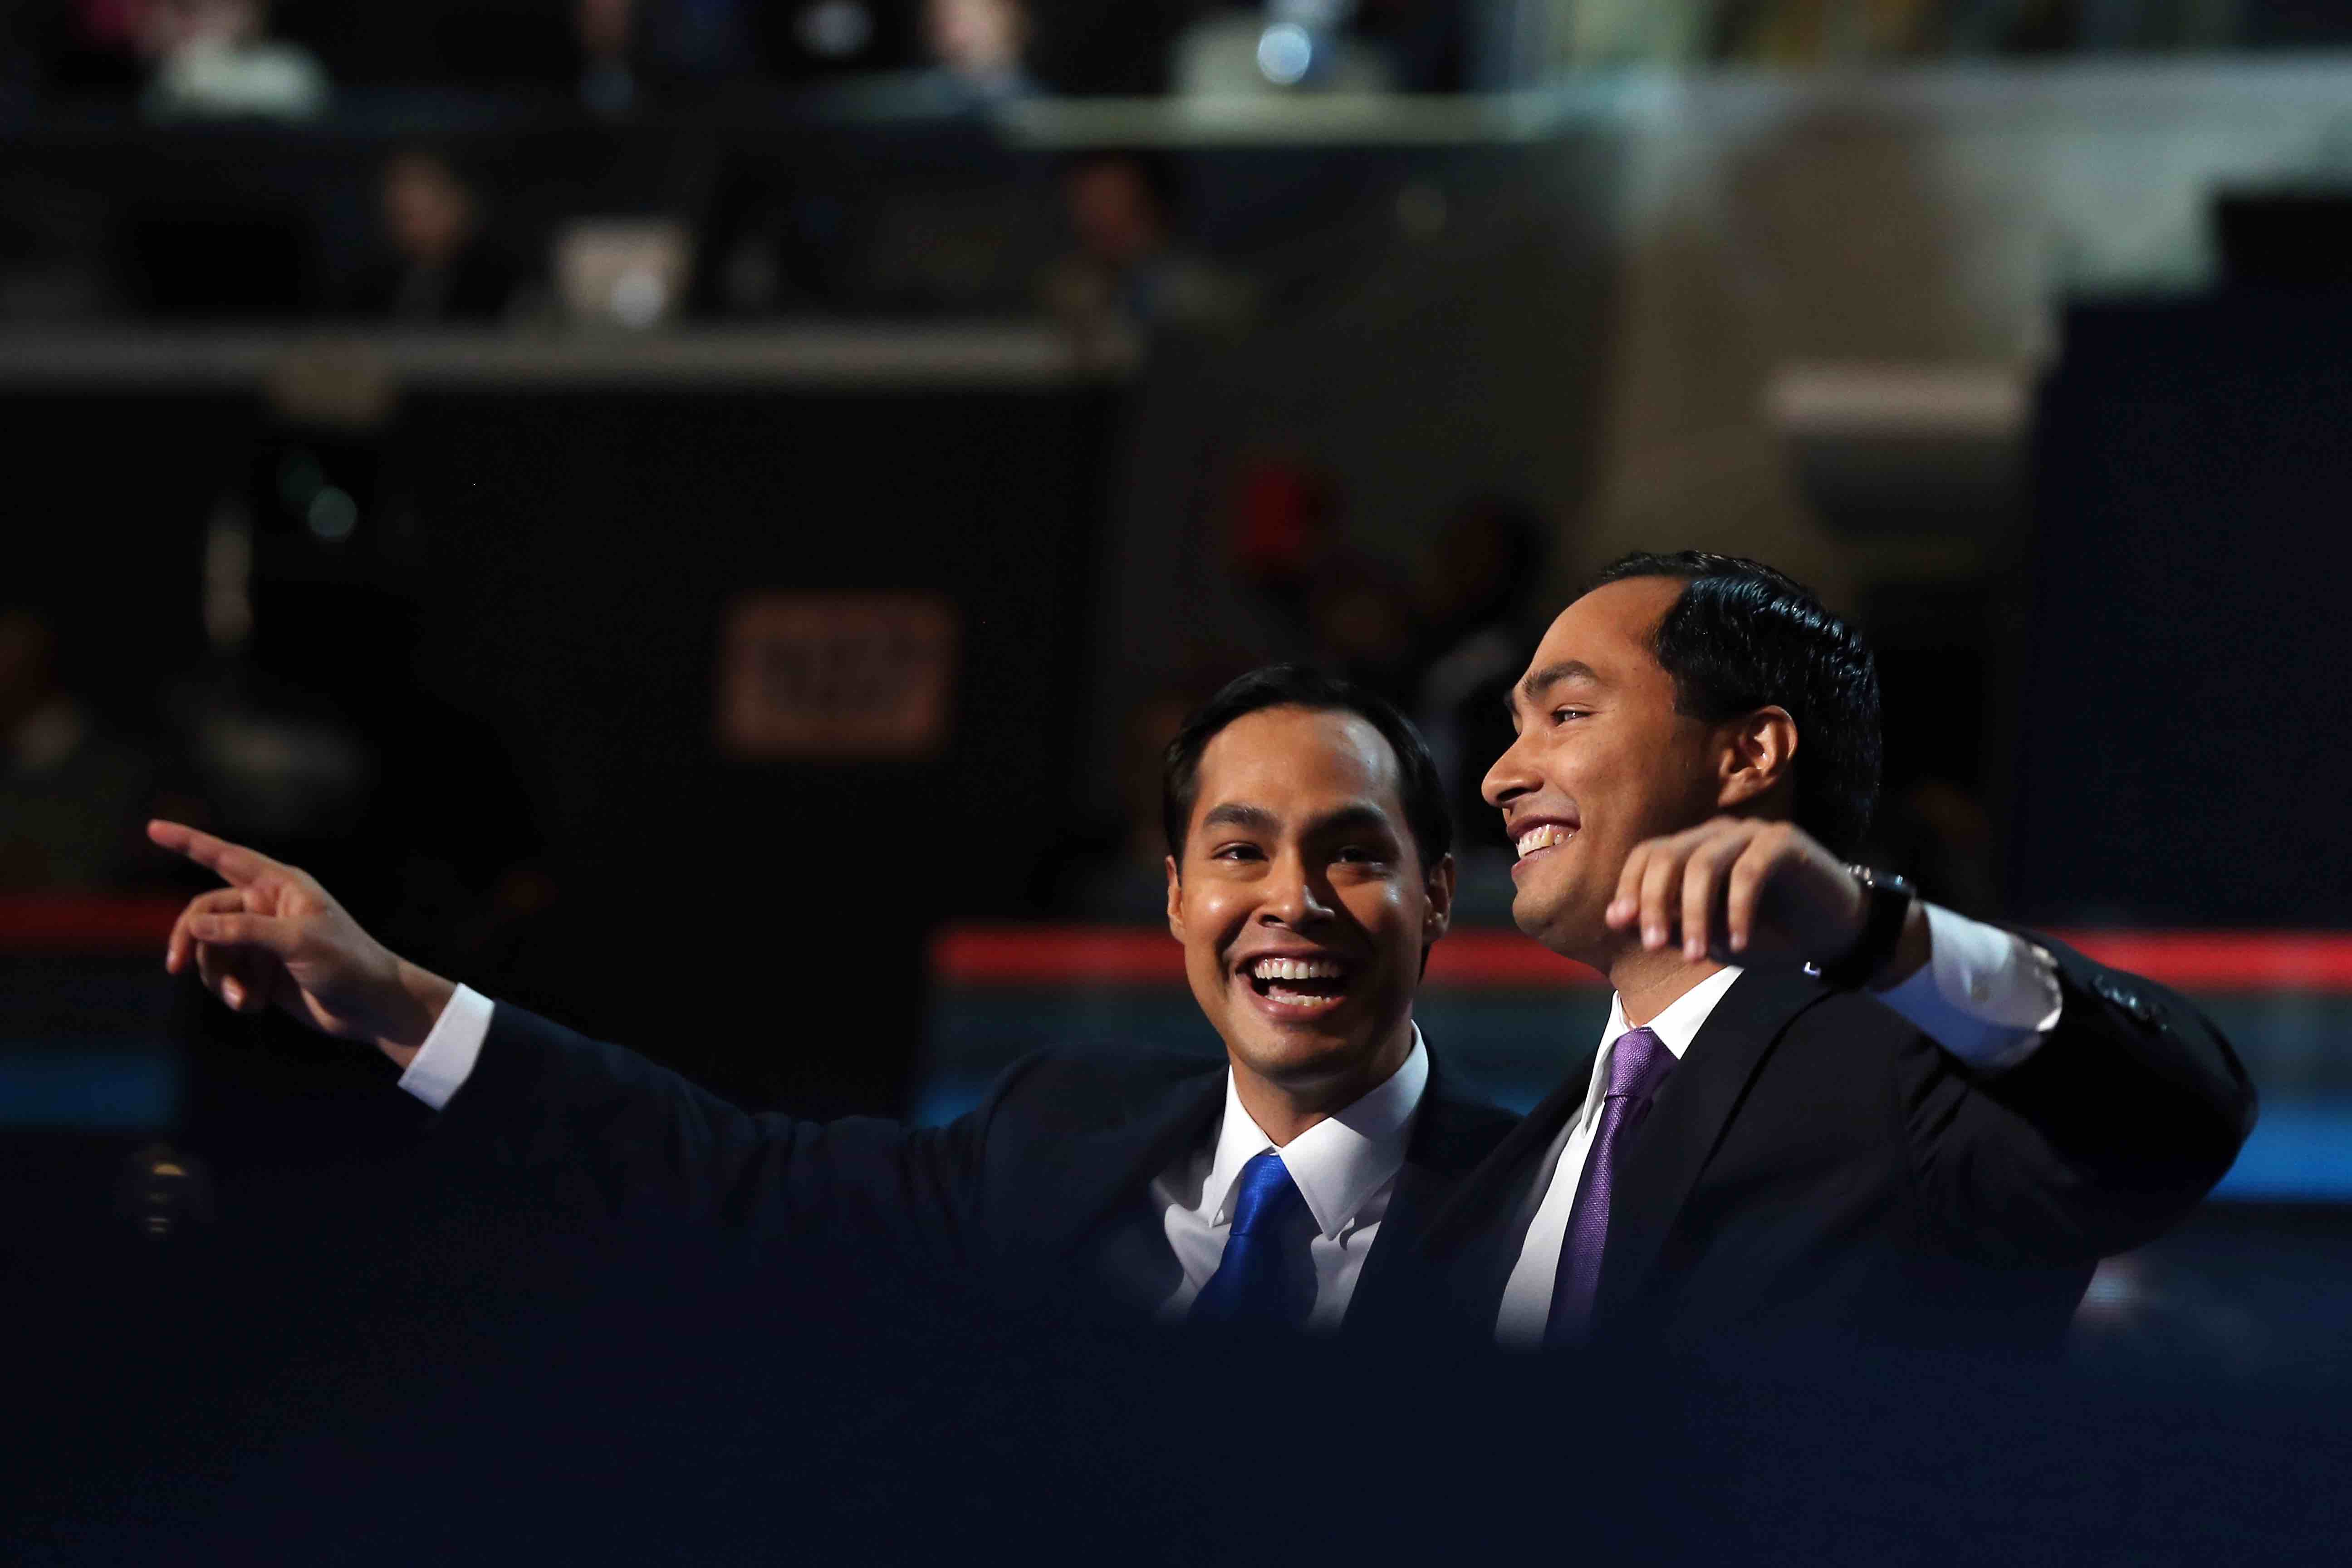 How to Tell Julián and Joaquin Castro Apart